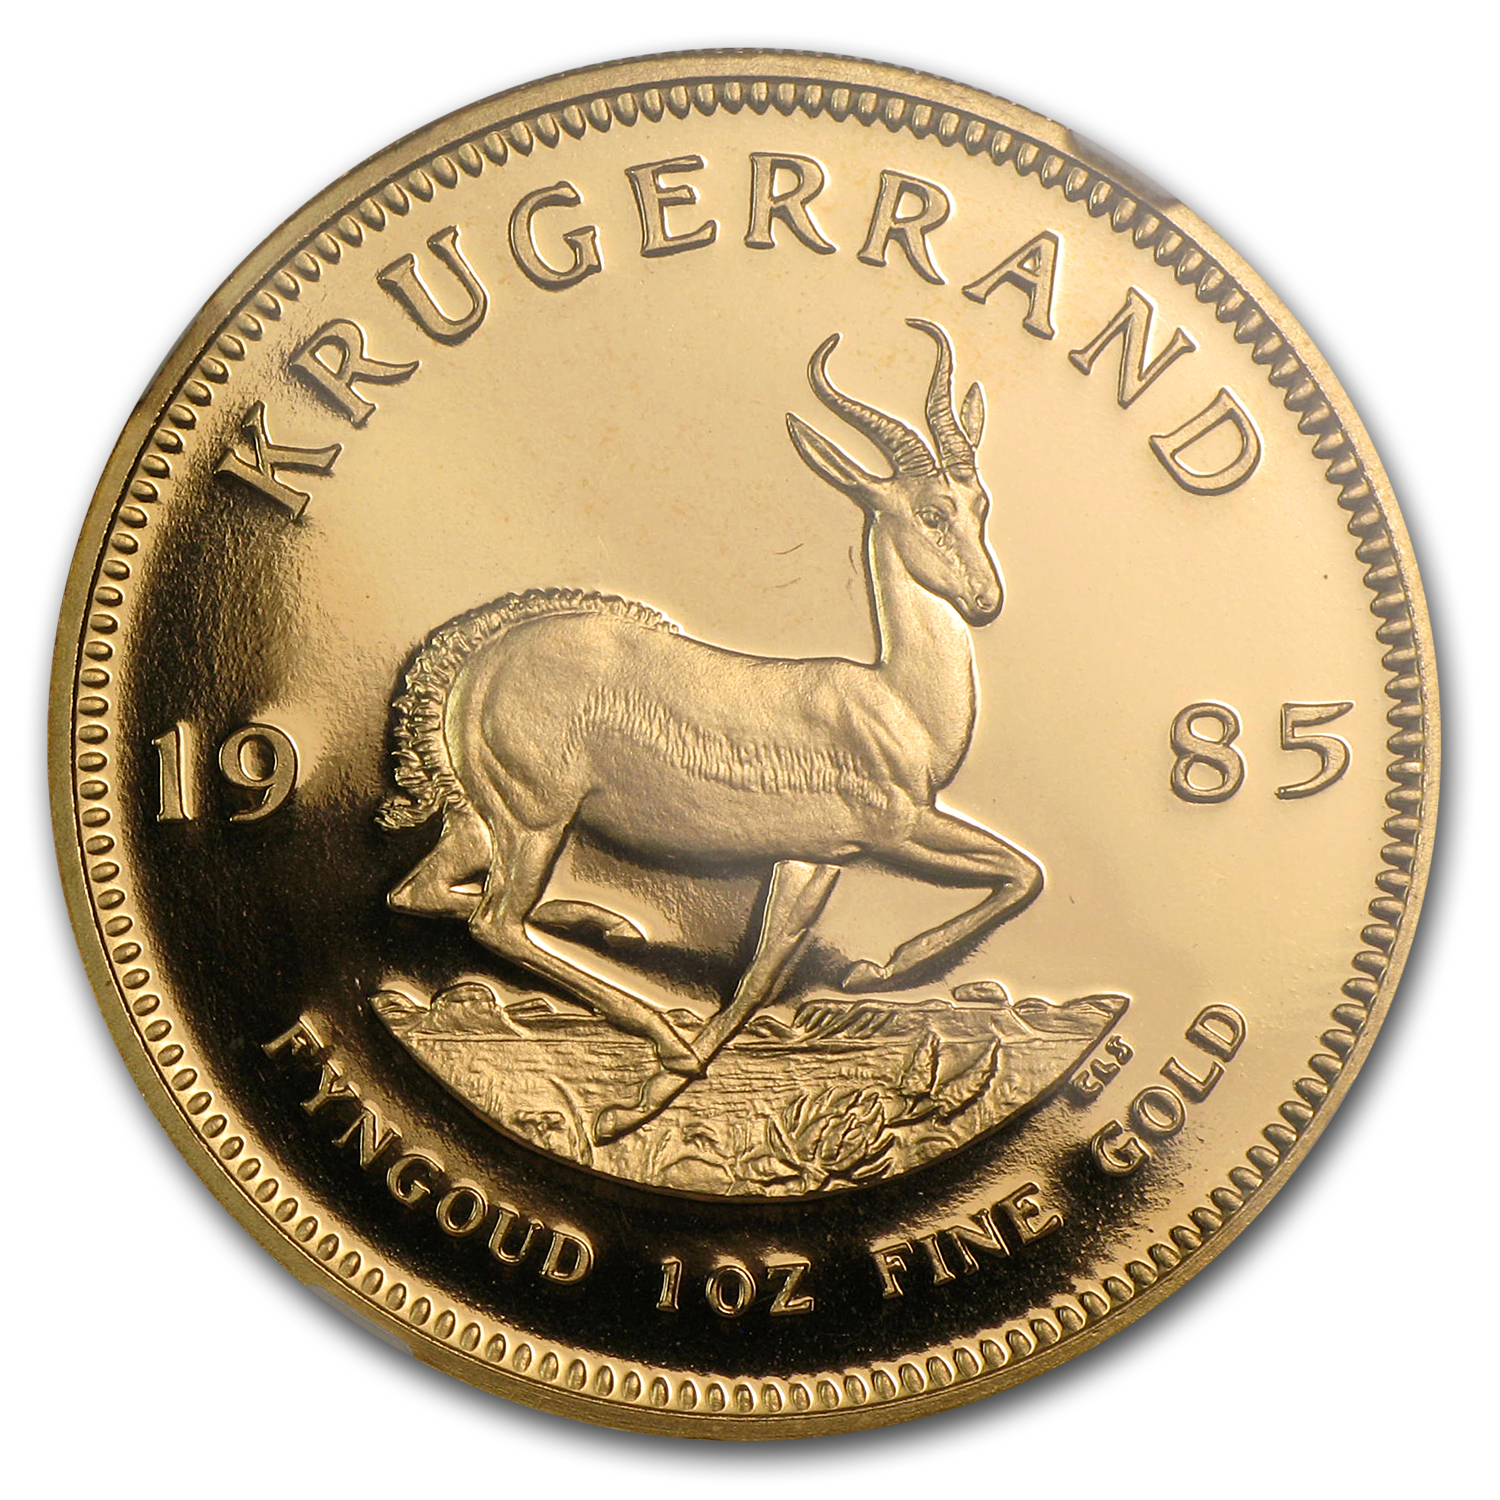 1985 1 oz Gold South African Krugerrand PF-69 NGC